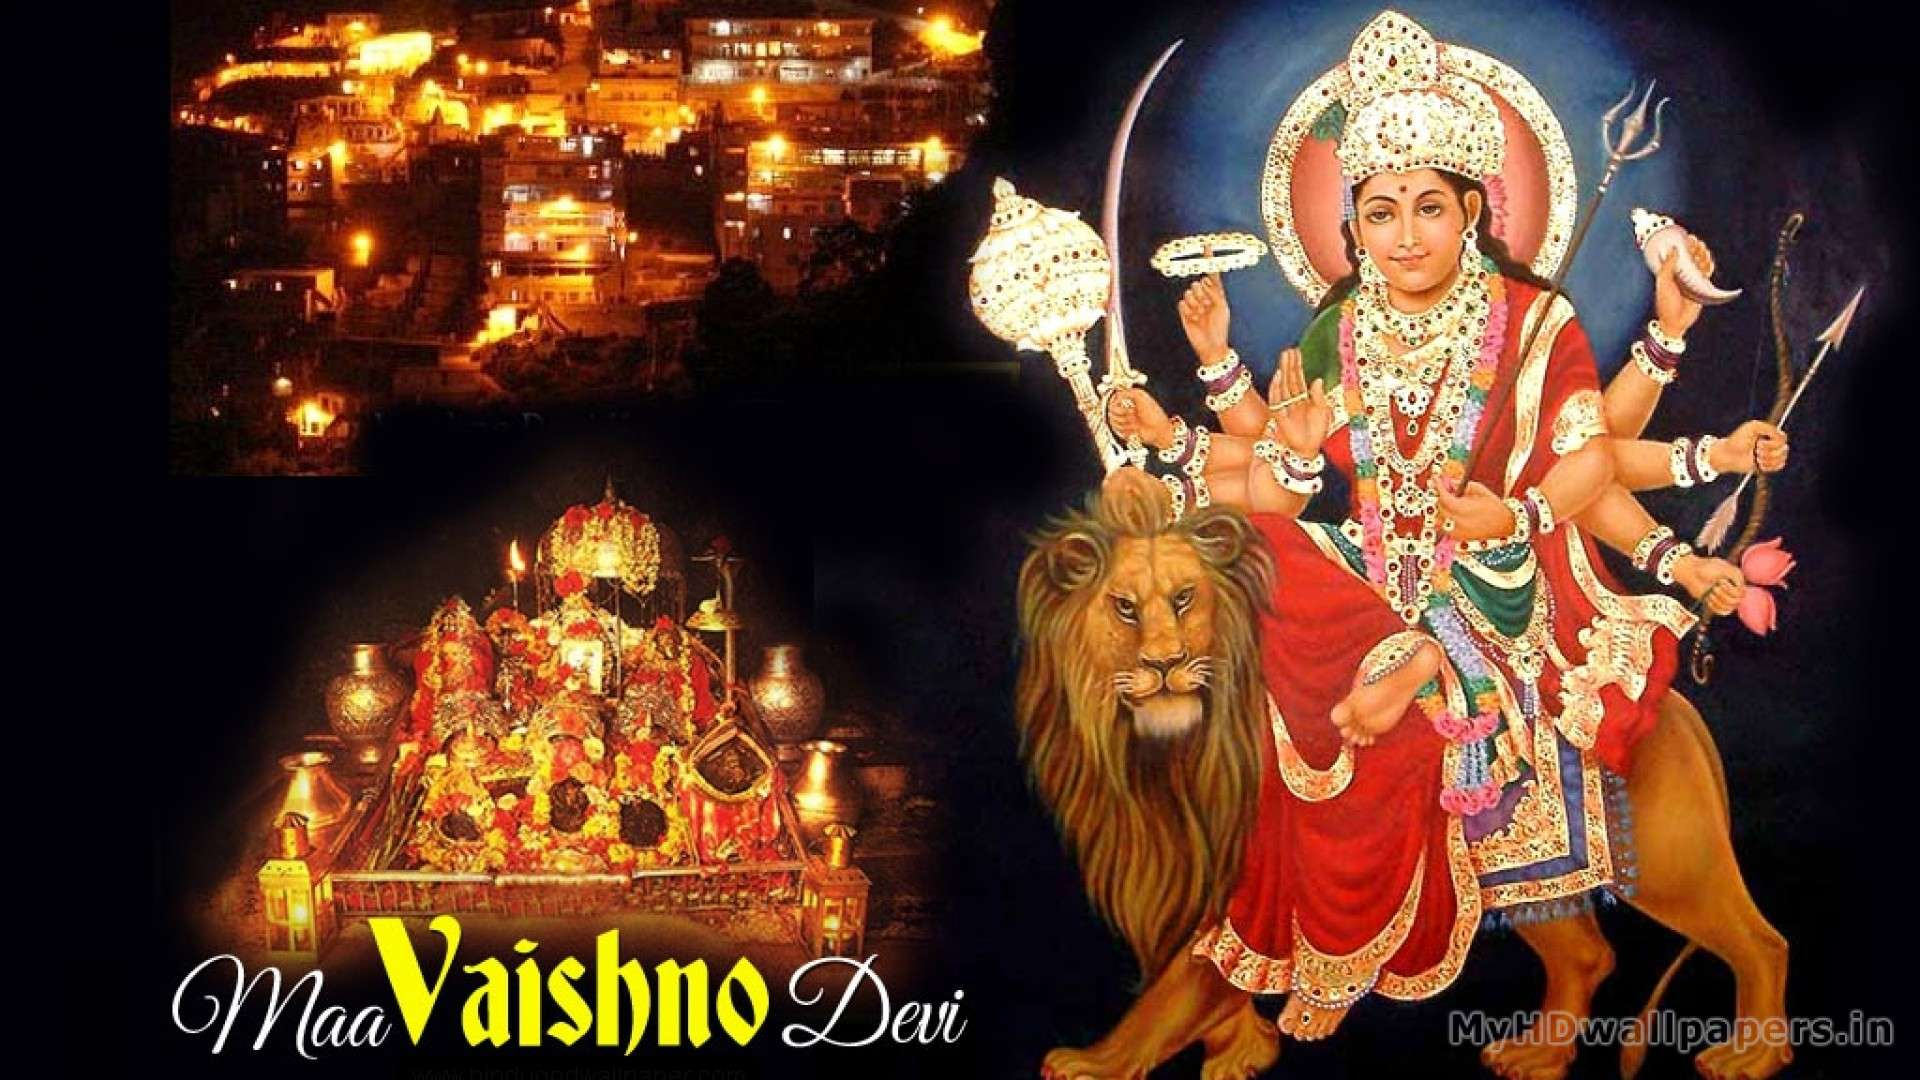 Wallpaper I Love You Maa : Maa Vaishno Devi Wallpapers For Desktop : Hd Wallpapers